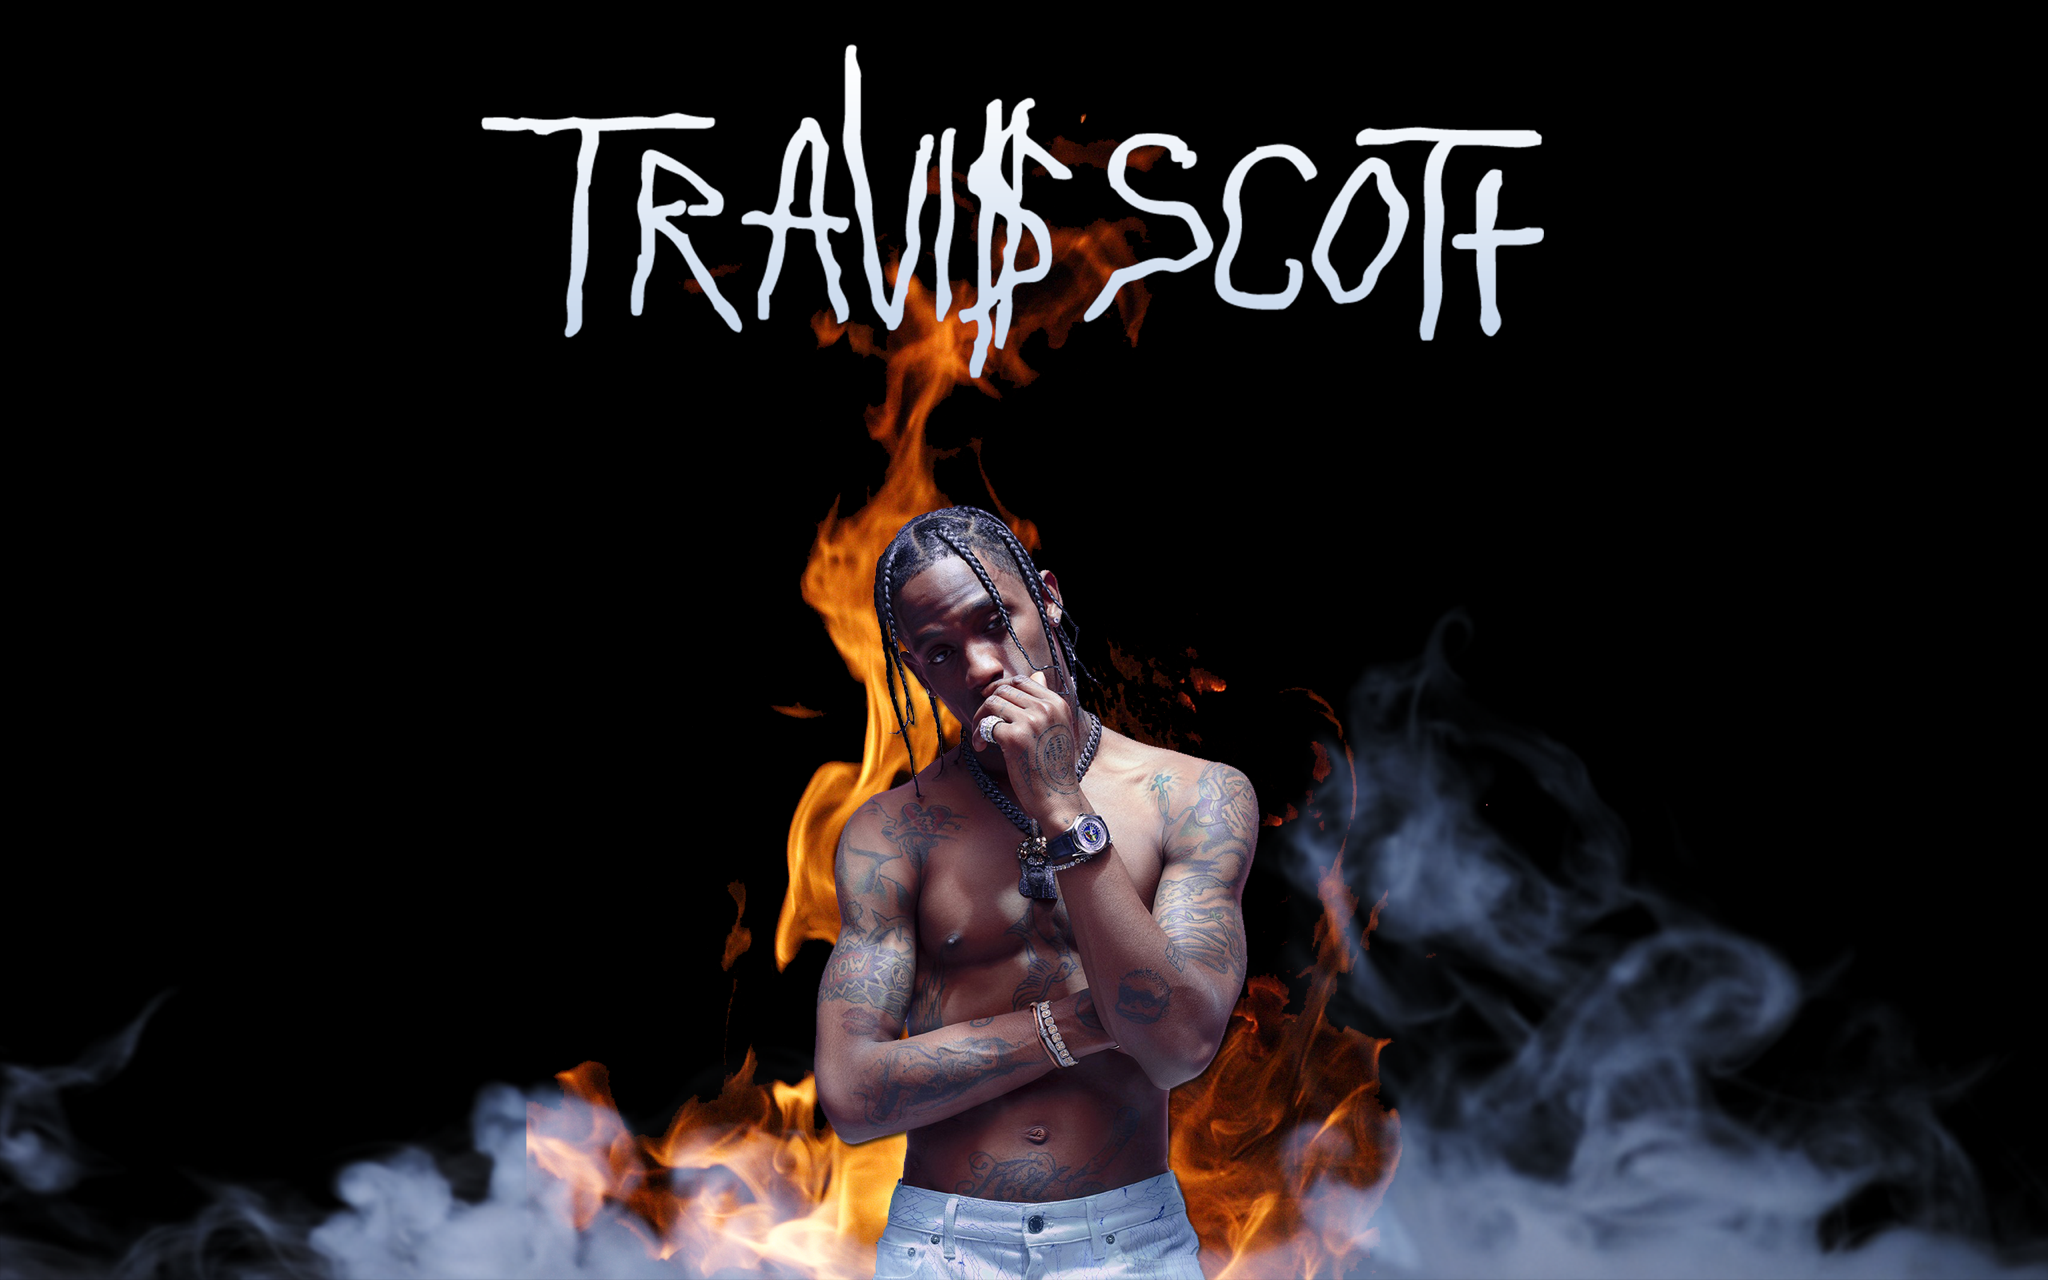 Travis Scott minimalistic wallpaper travisscott 2048x1280